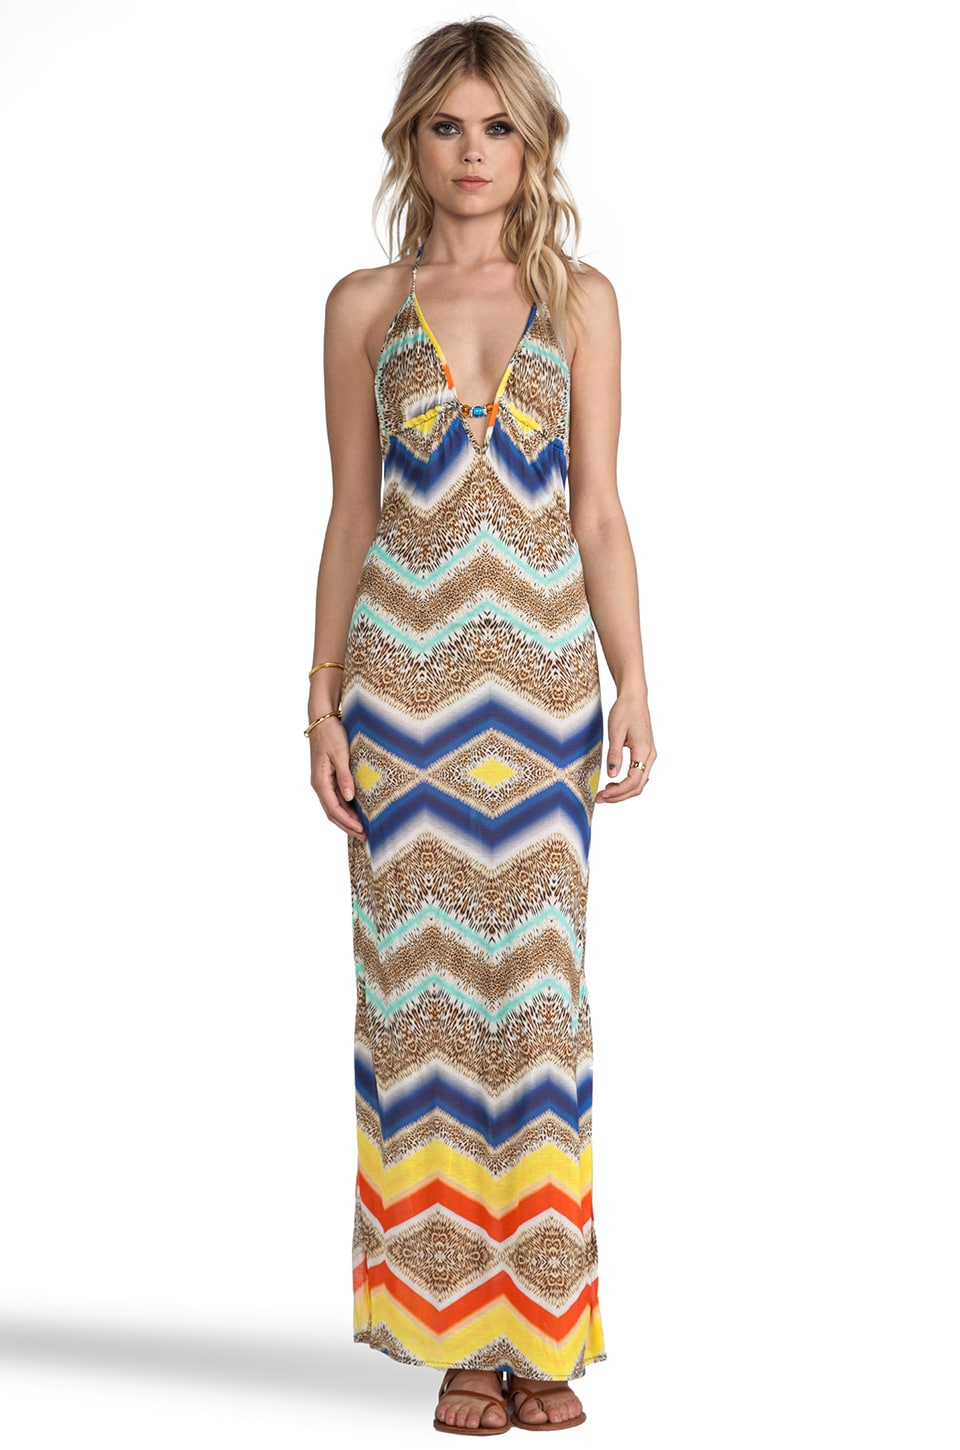 MILLY Saint Helena Maxi Dress in Multi